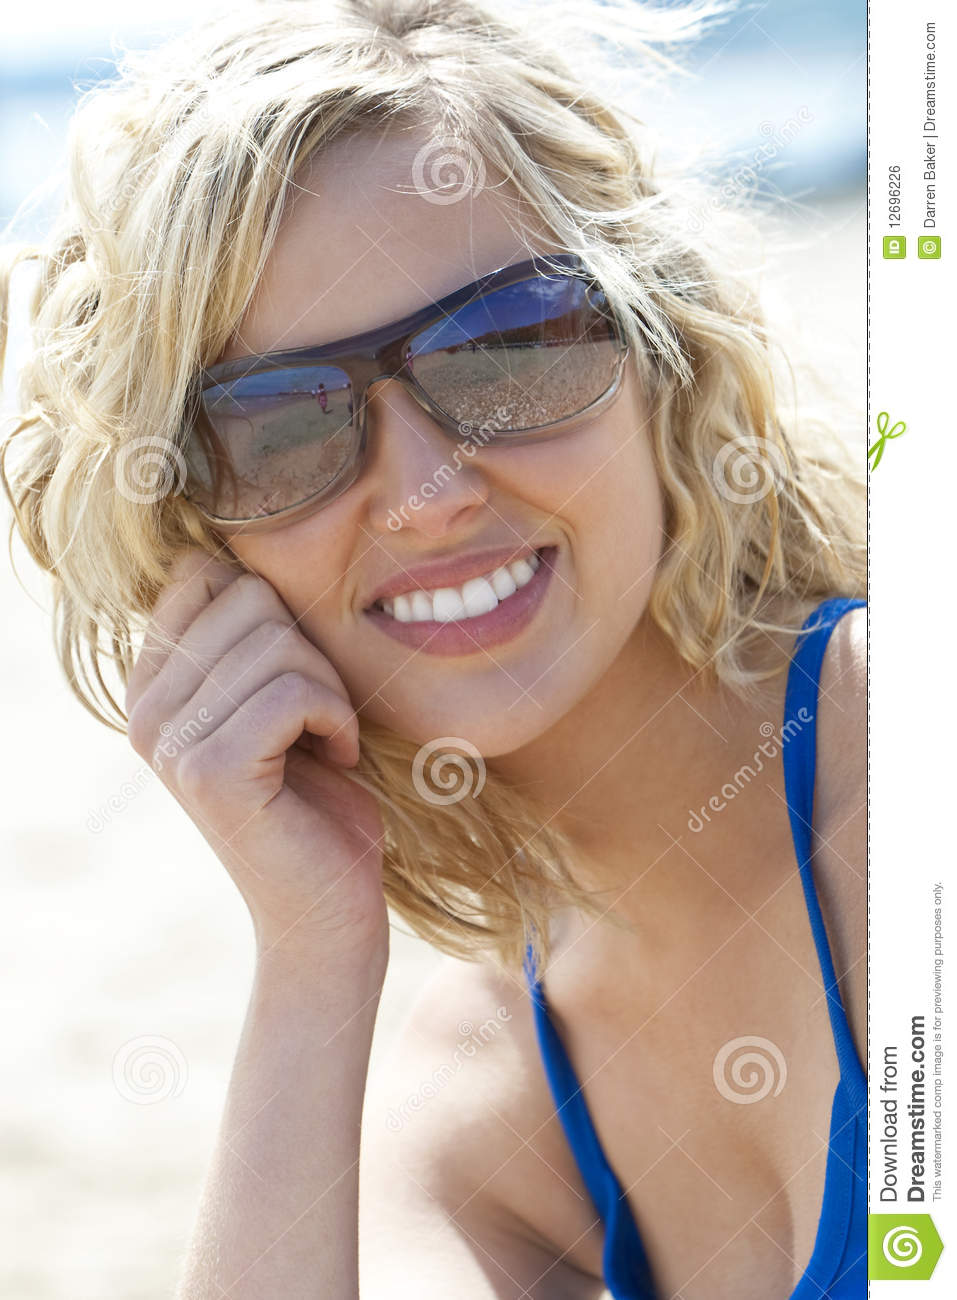 Beautiful Young Blond Woman in Sunglasses Smiling